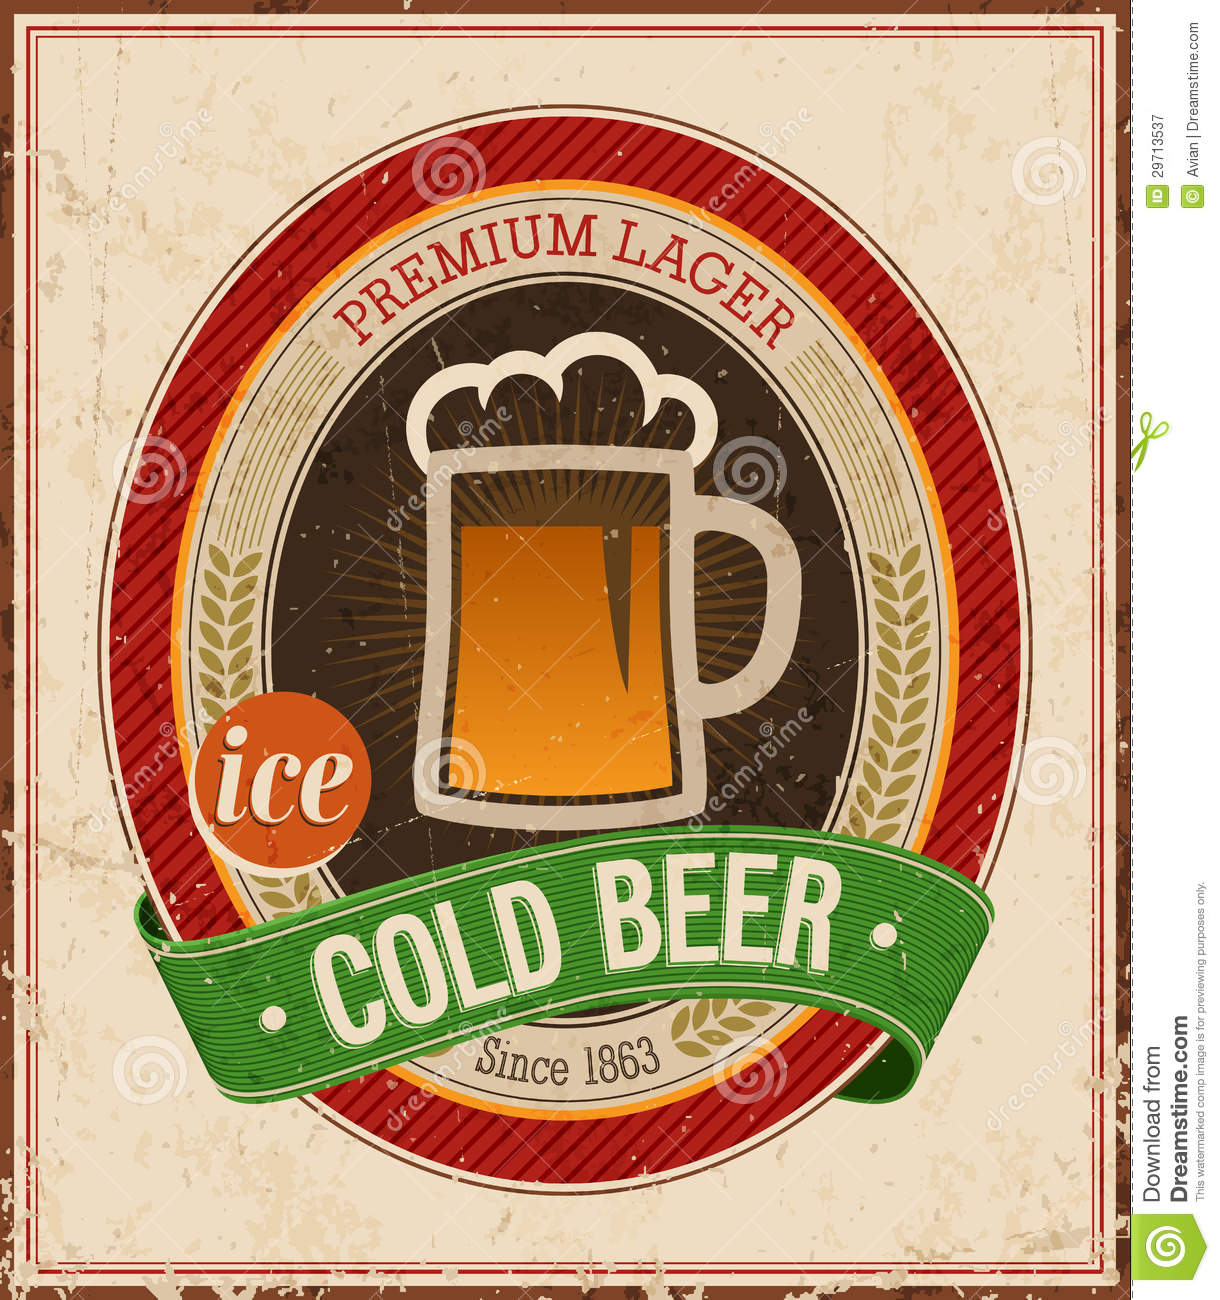 vintage cold beer poster  royalty free stock photography